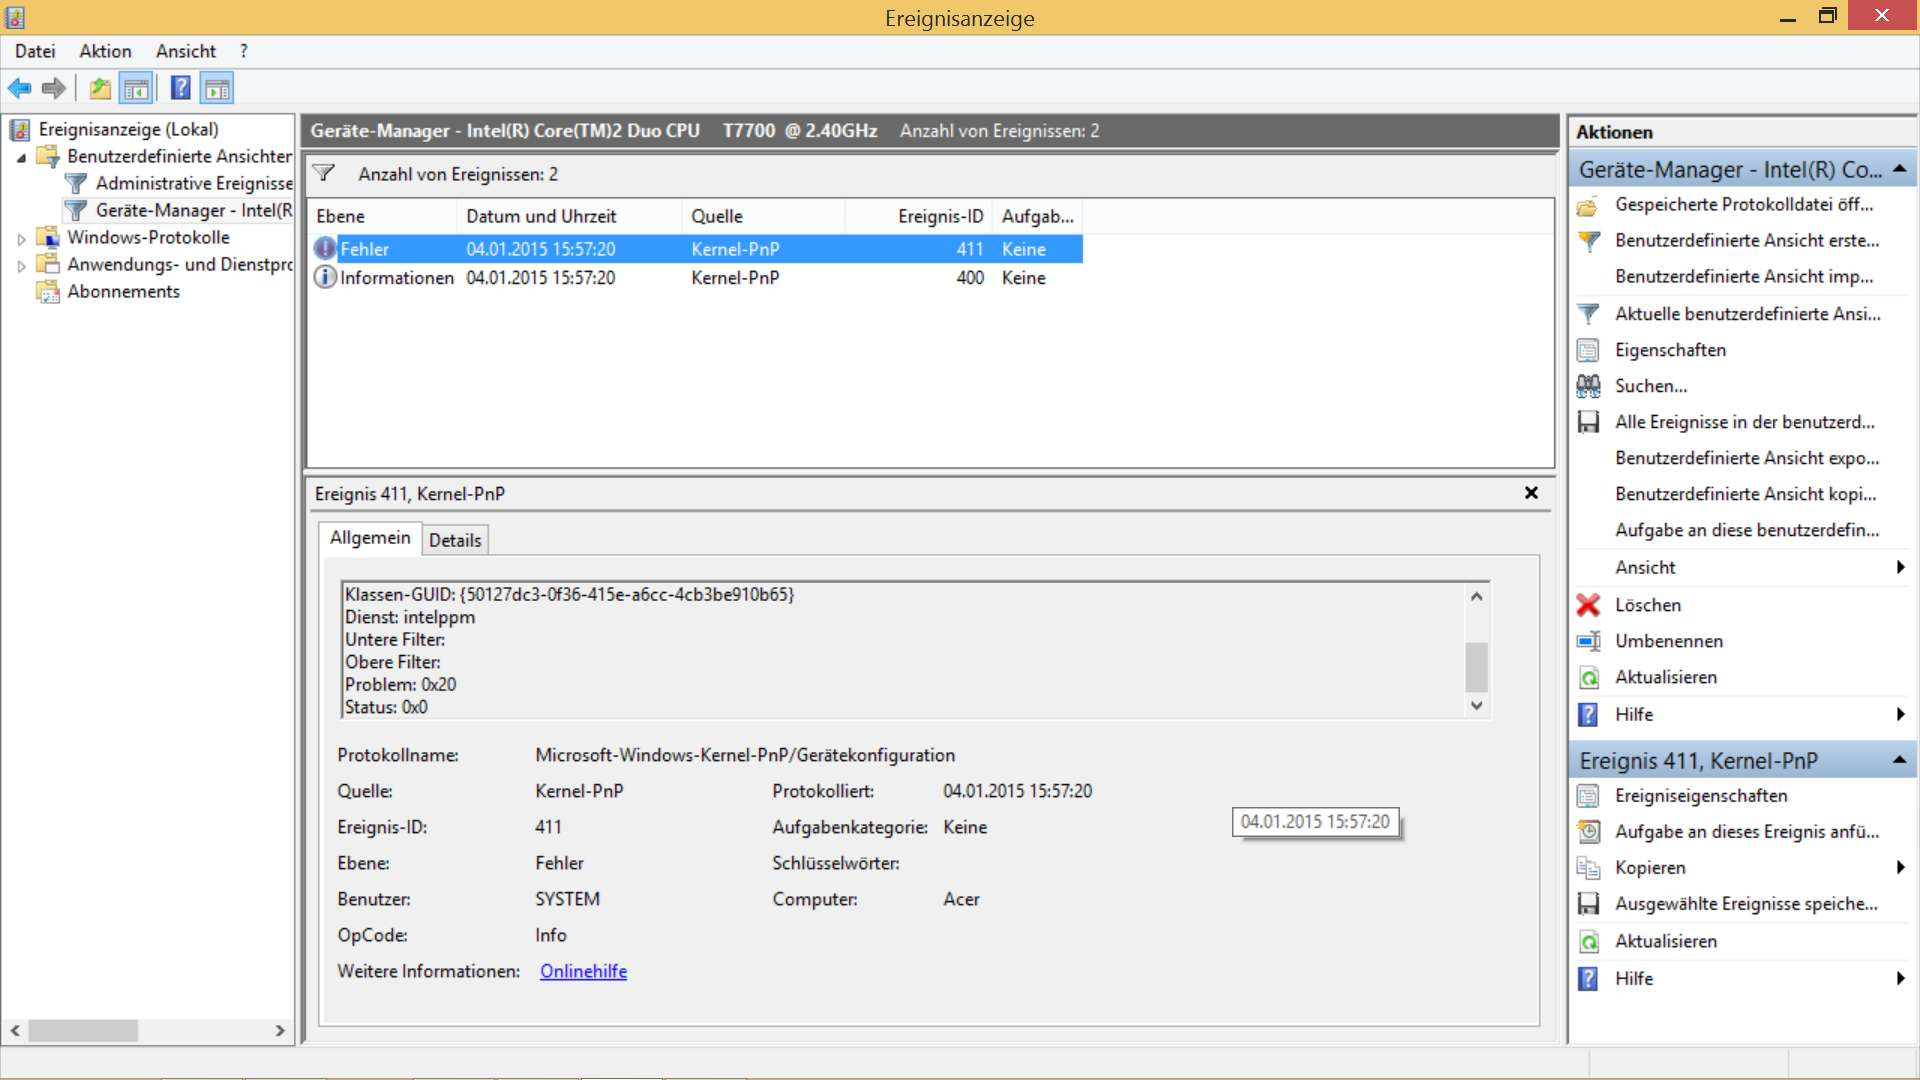 PCI Simple Communications Controller driver free download for windows